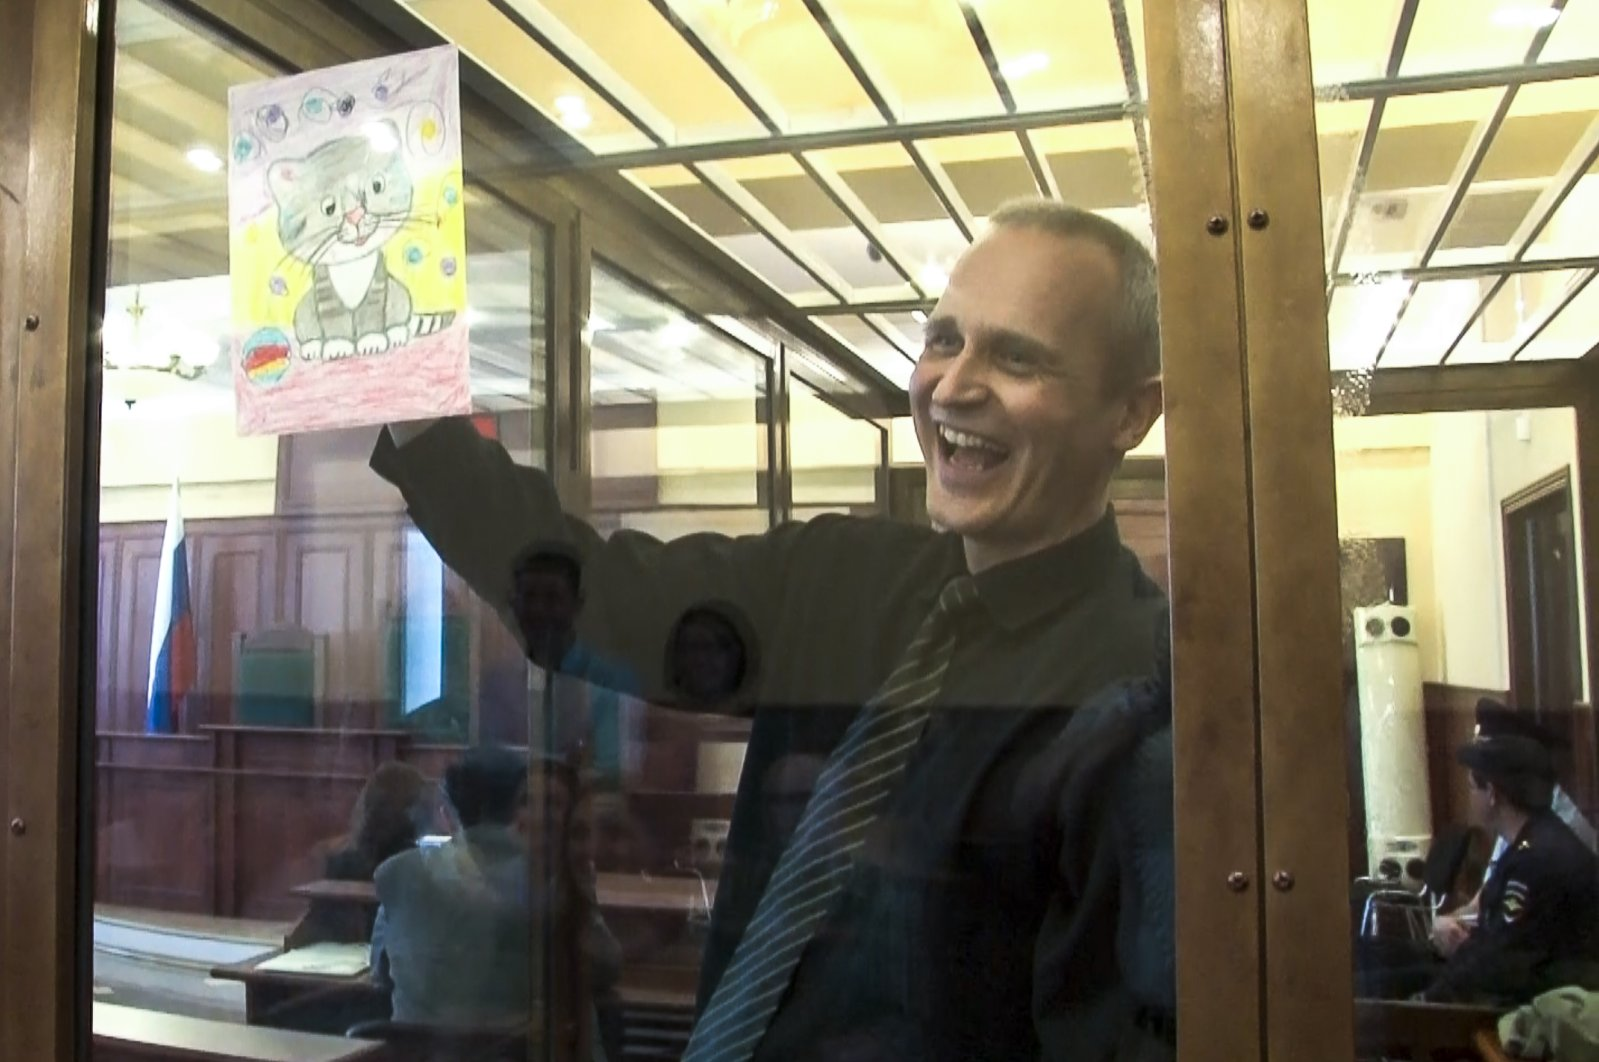 In this file image taken from video, Dennis Christensen shows a picture in a courtroom in Oryol, Russia, May 23, 2019. (AP Photo)